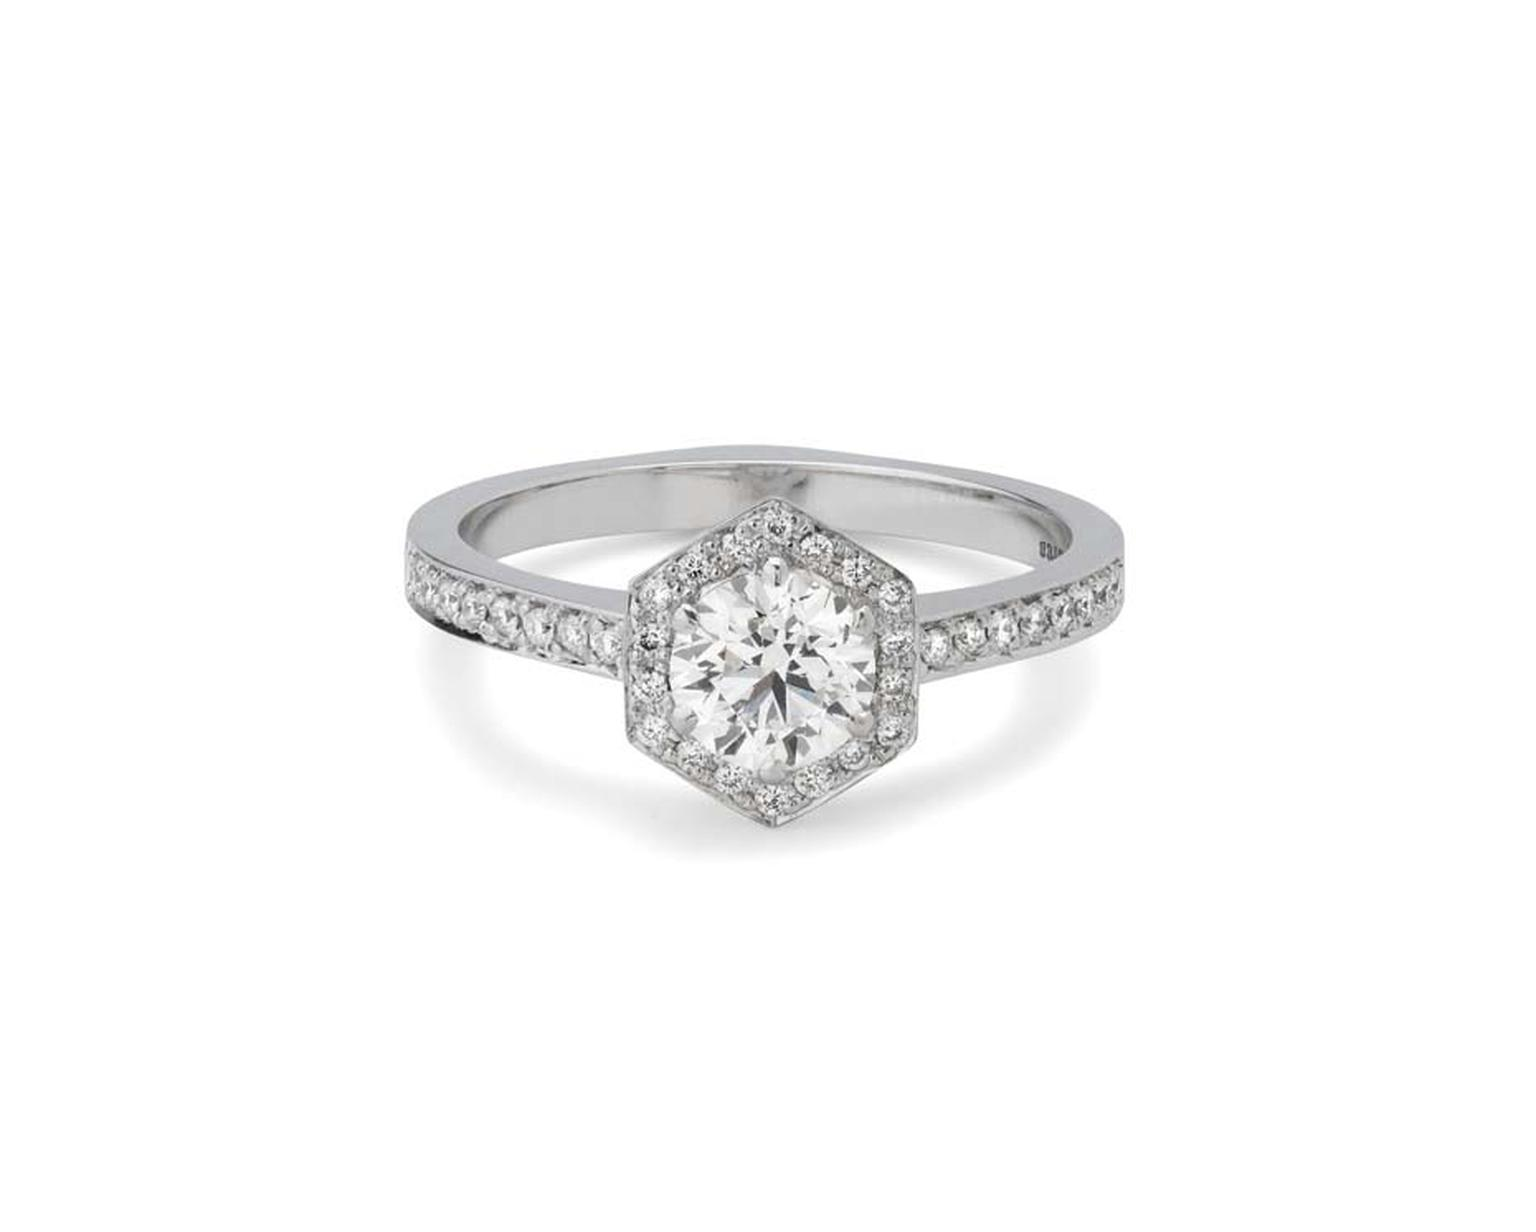 Stephen Webster's Bridal Collection 'Deco' Hexagonal engagement ring with Forevermark diamonds.